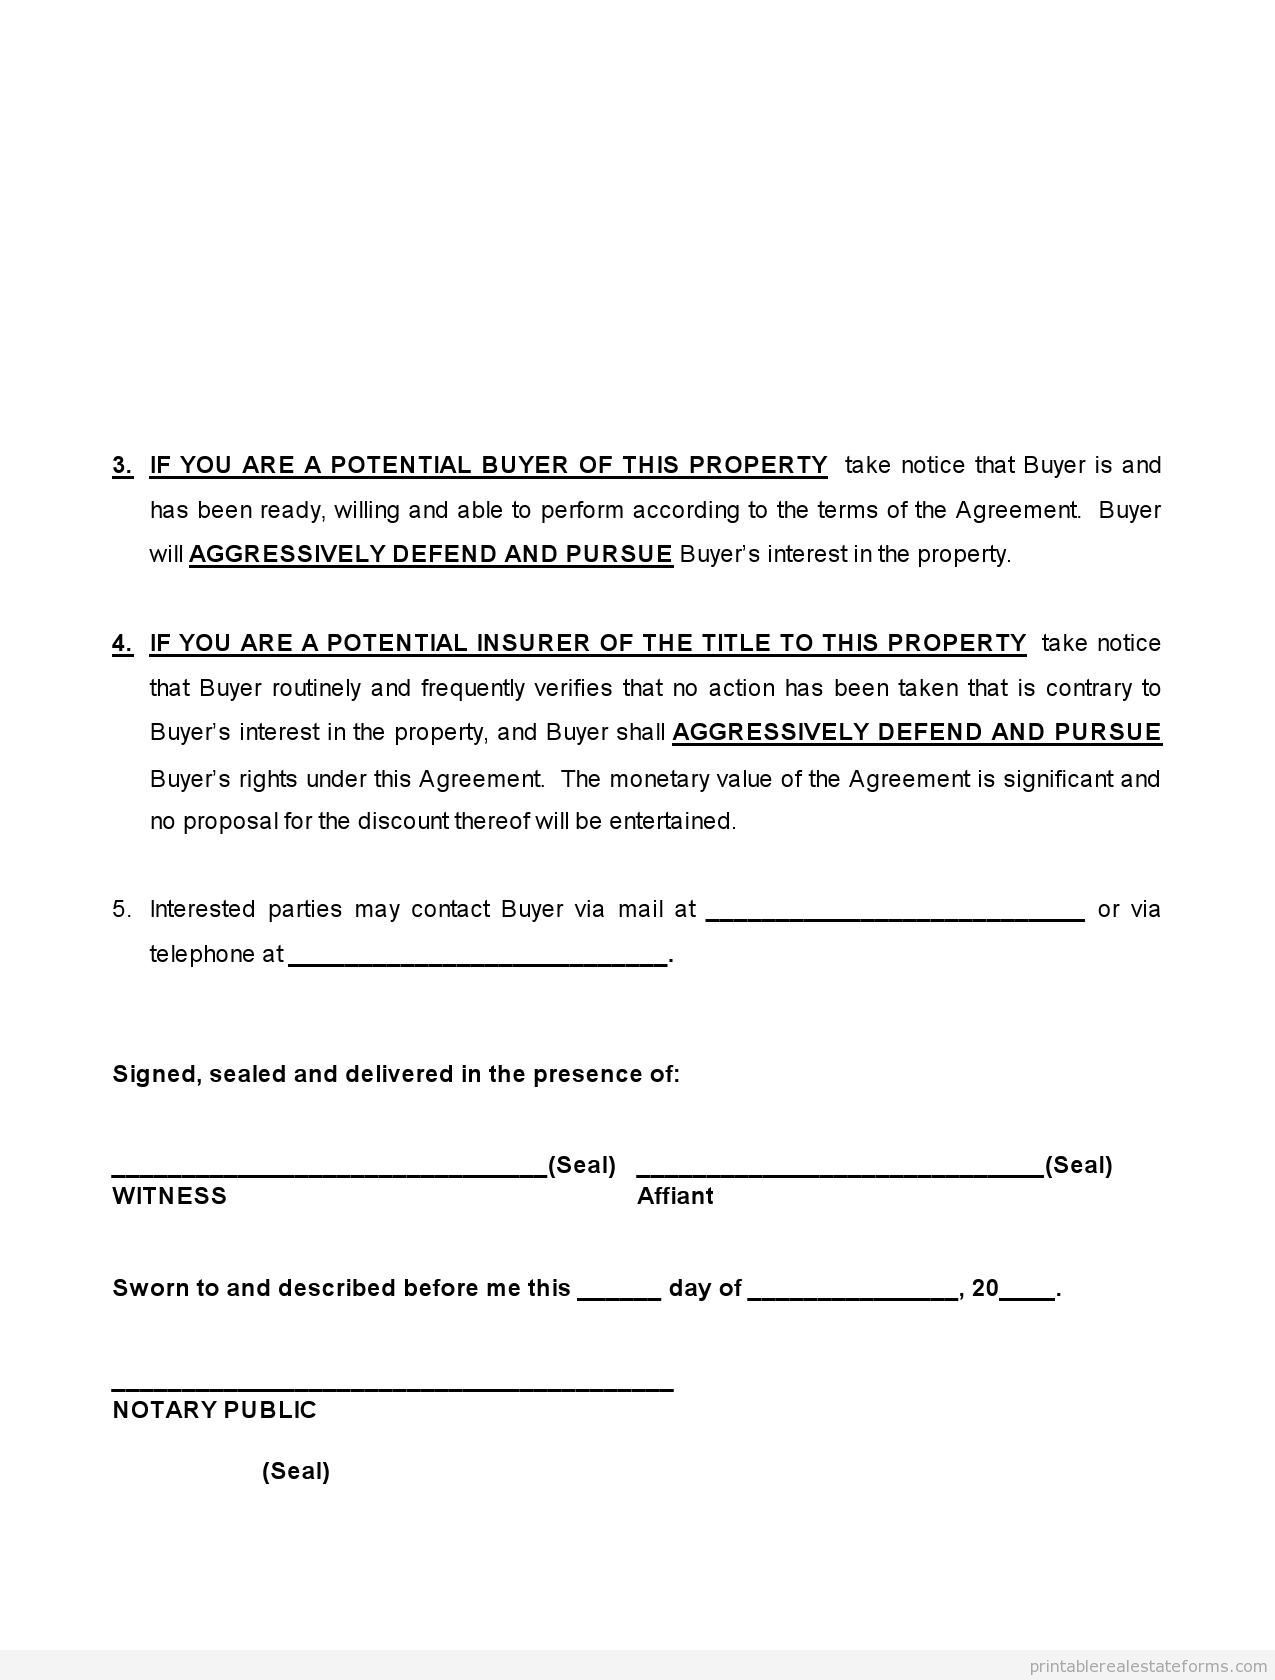 Sample Printable Affidavit Of Equitable Interest Form  Printable